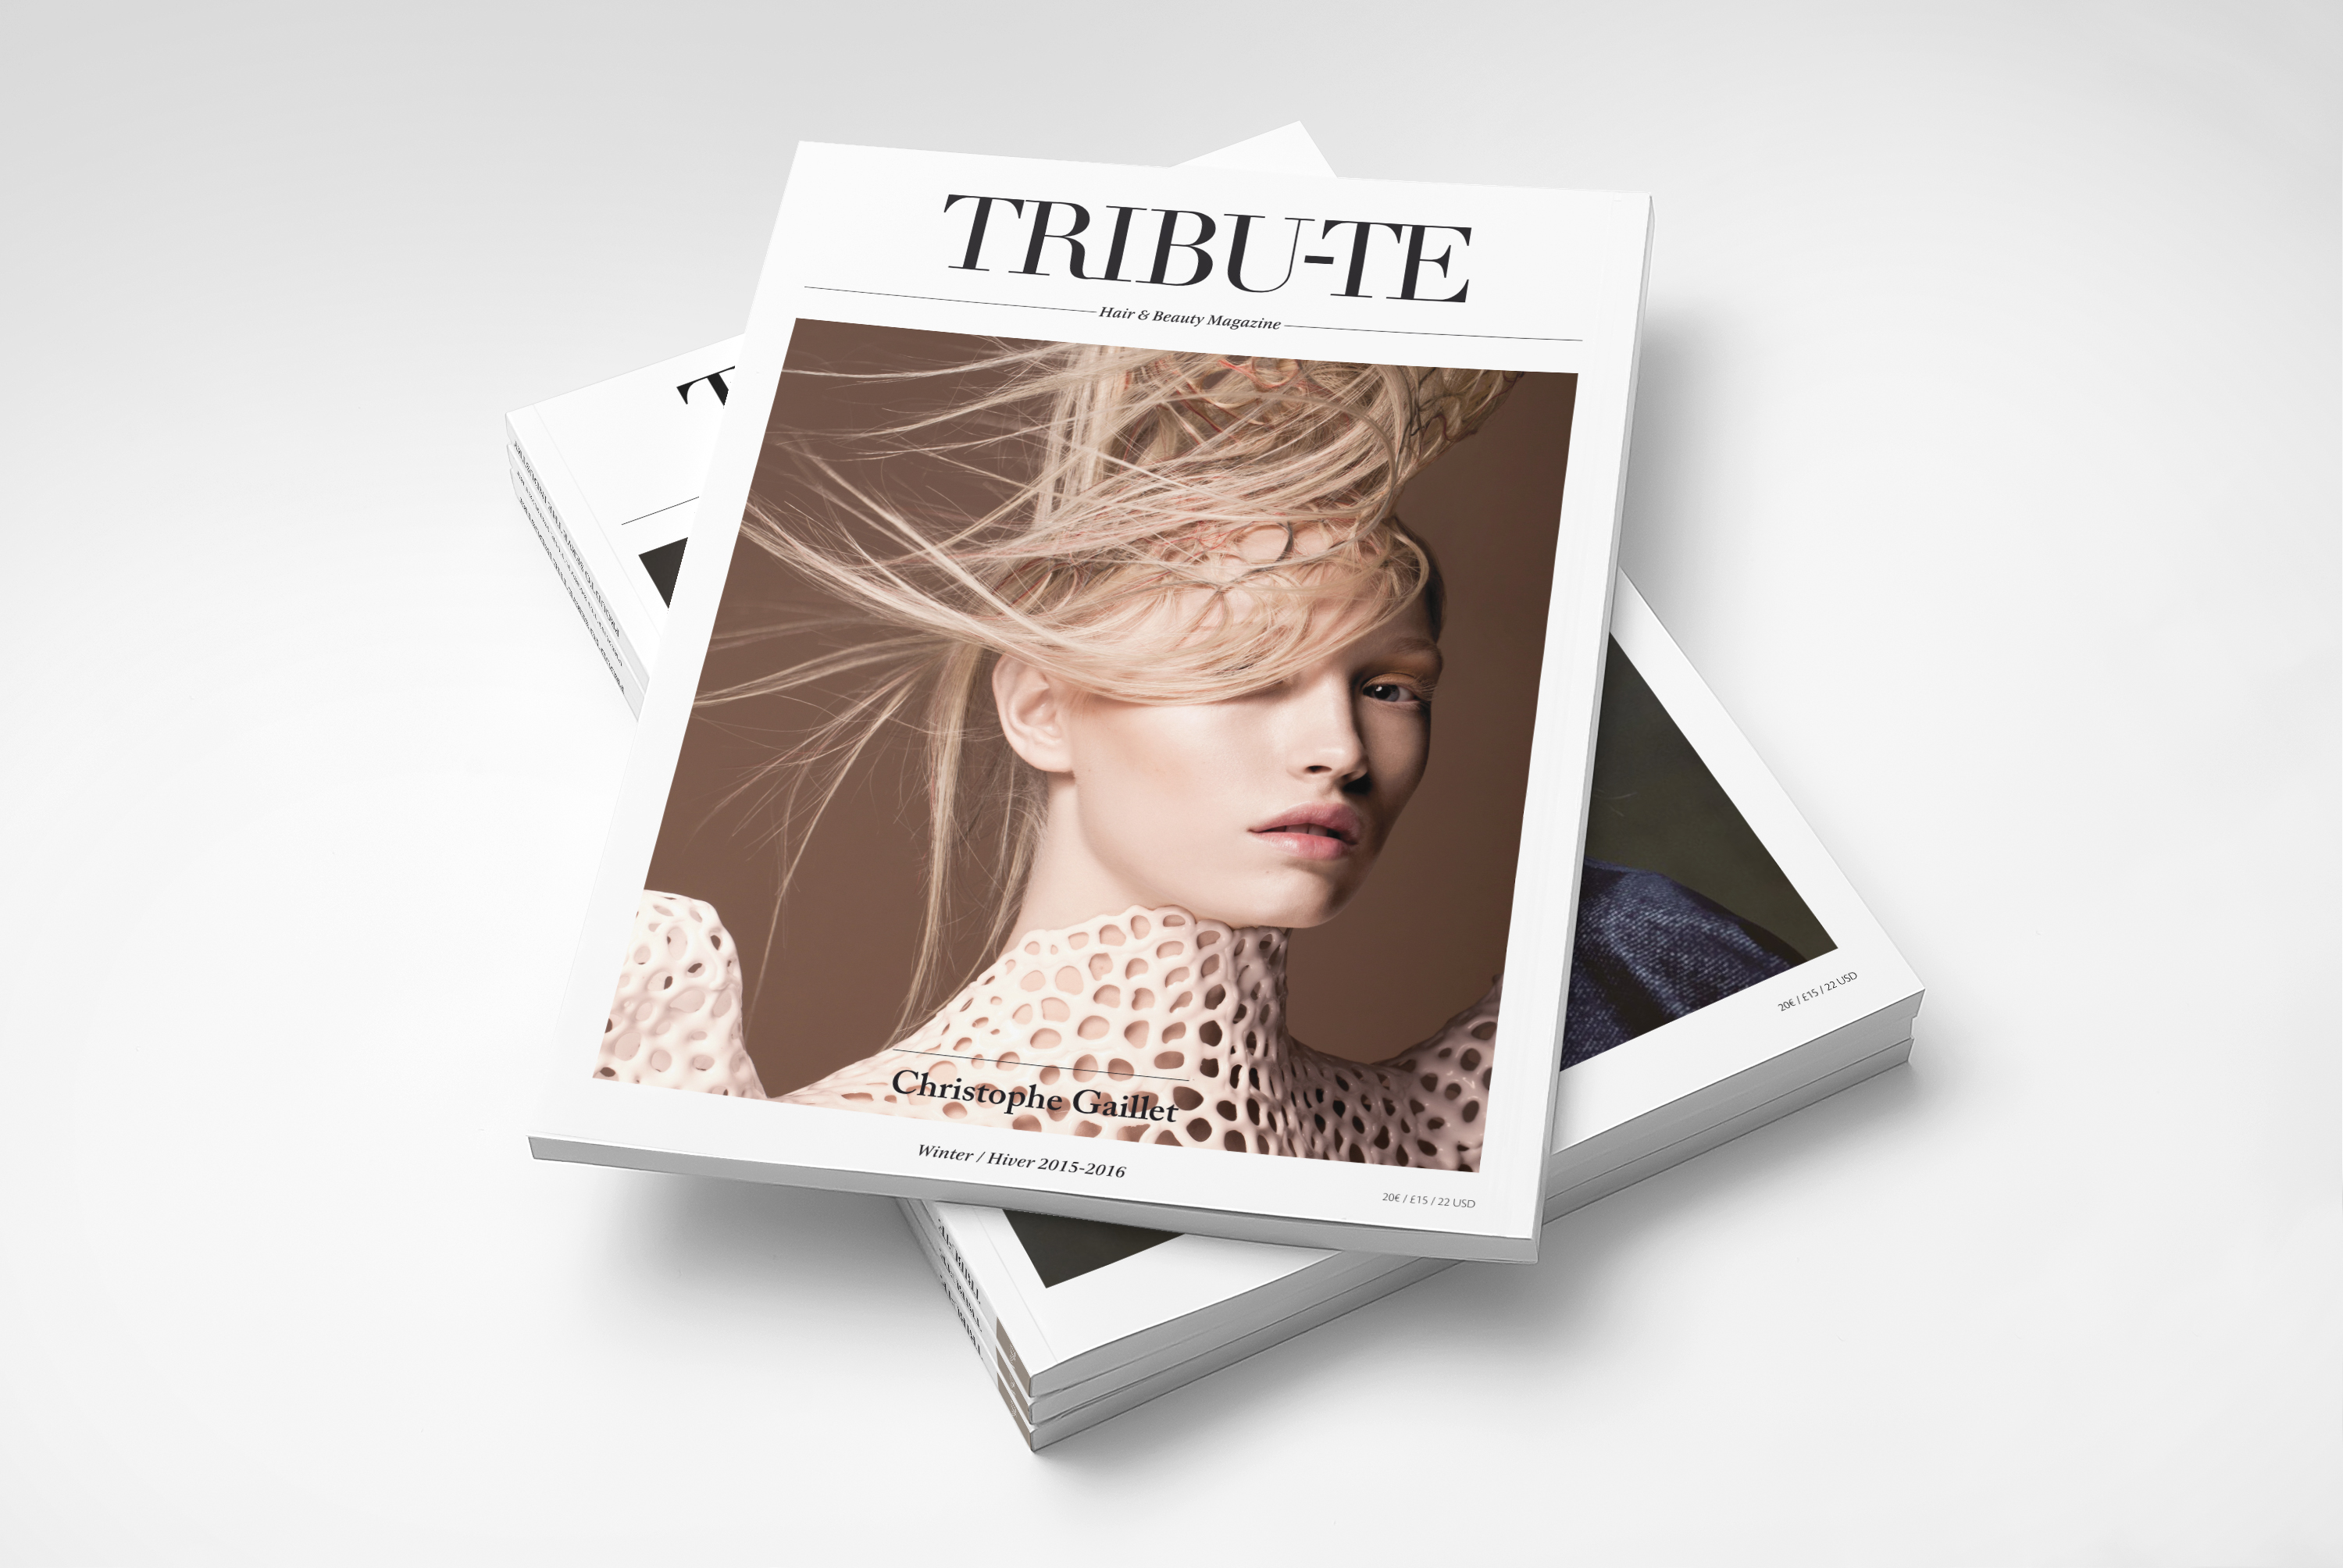 Tribu-te magazine subcription